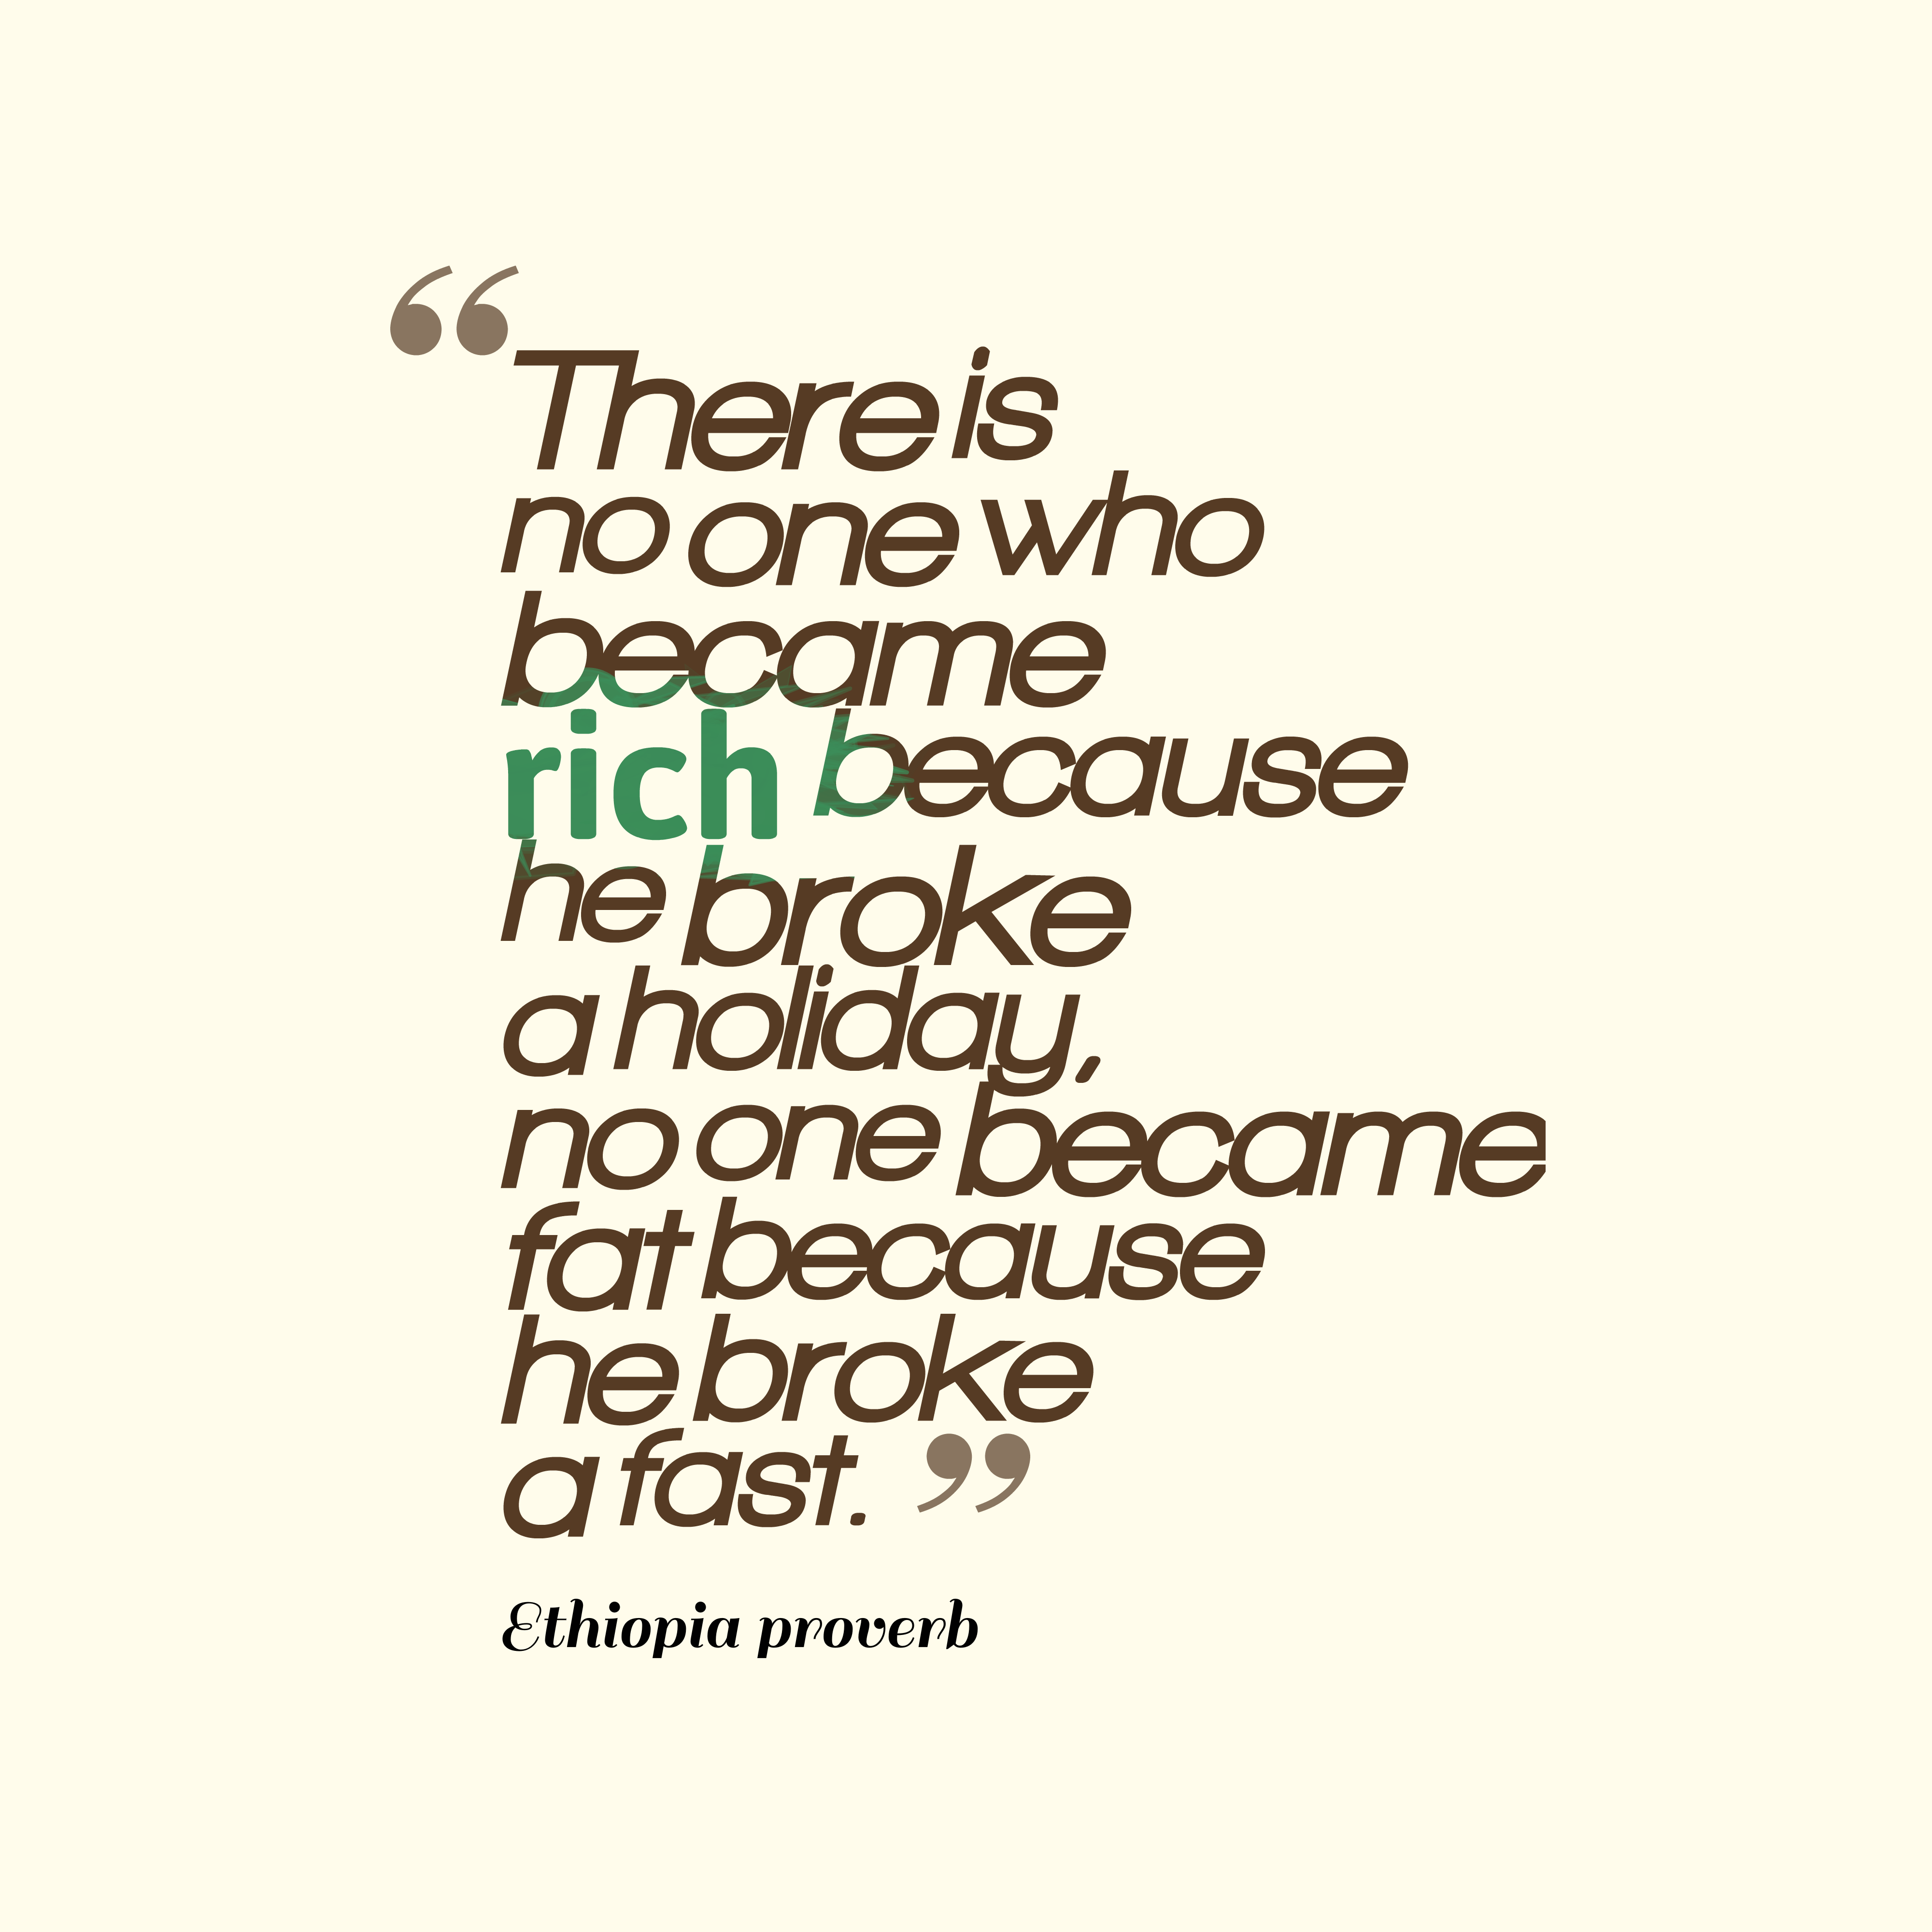 Quotes image of There is no one who became rich because he broke a holiday, no one became fat because he broke a fast.